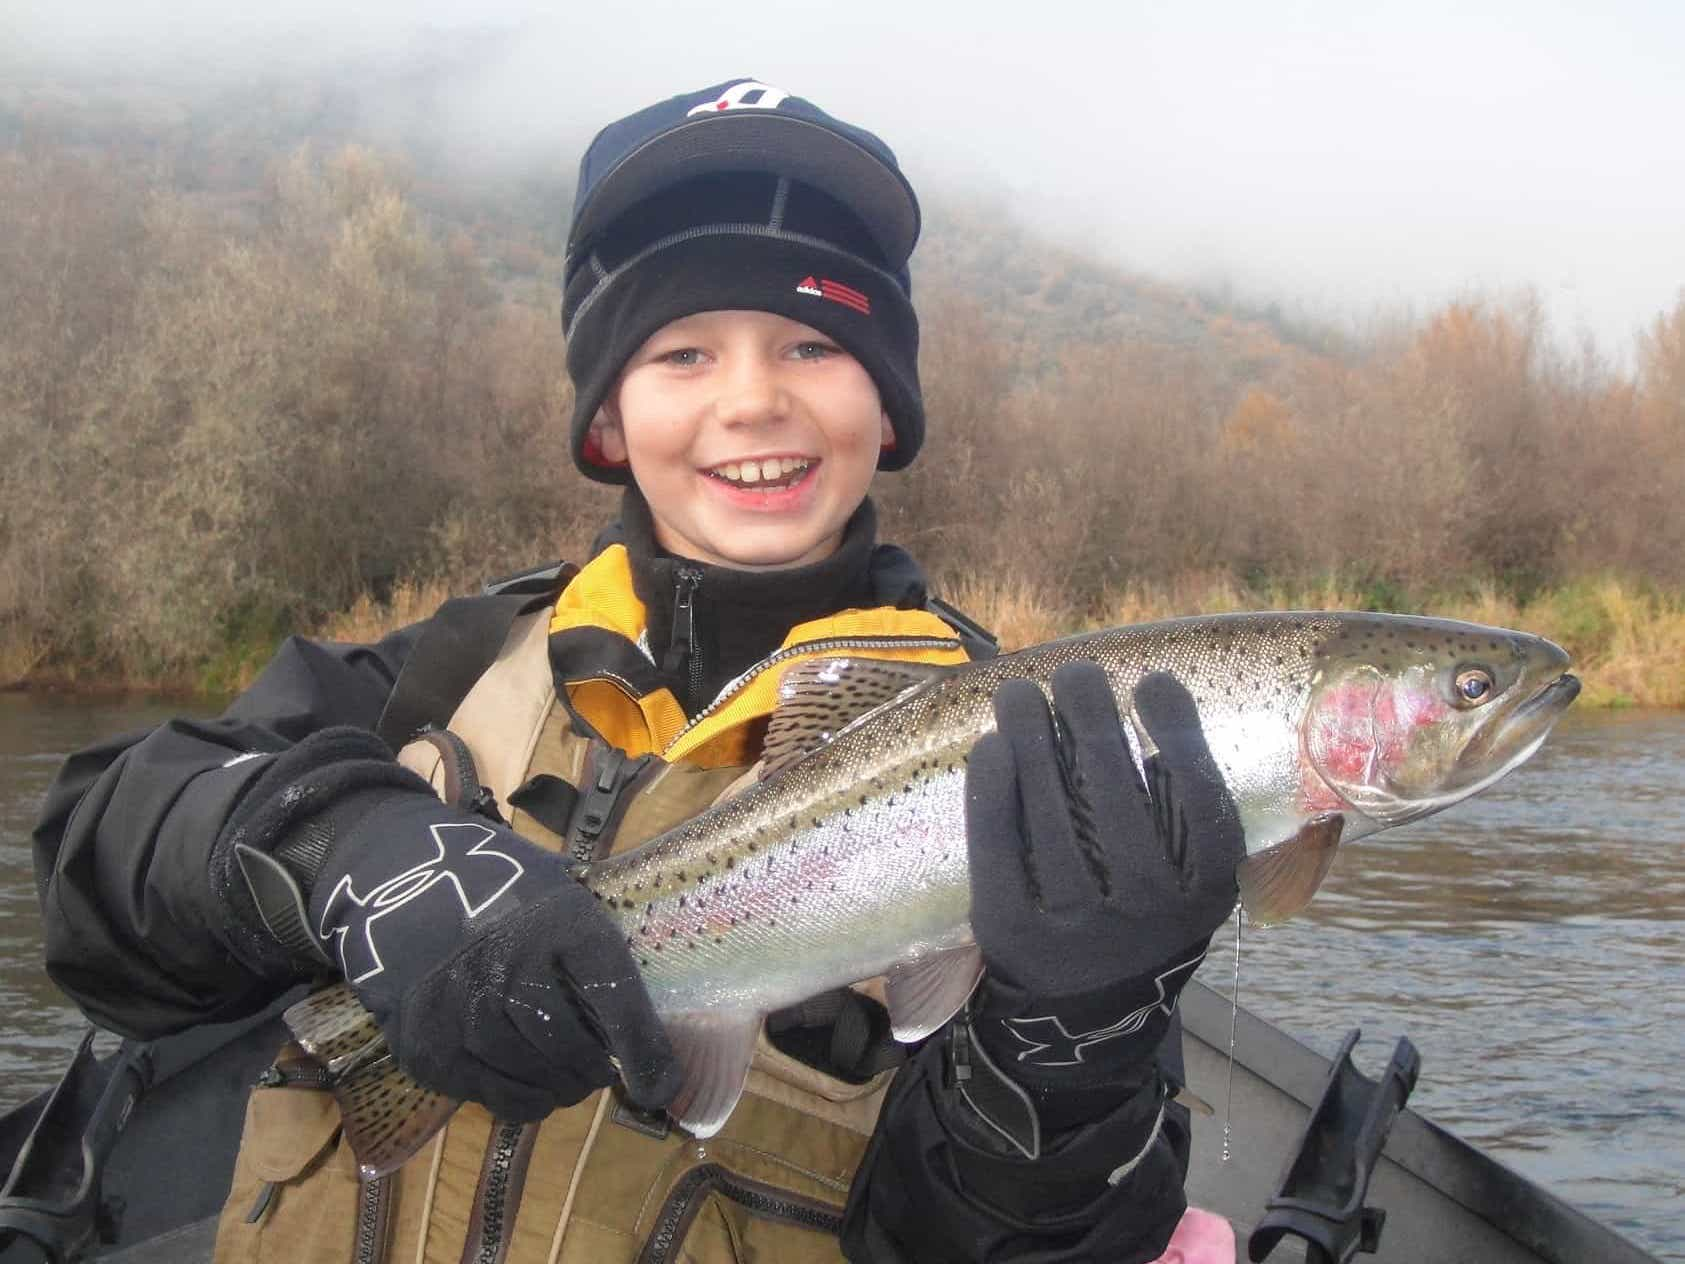 Rogue river steelhead caught fishing the upper Rogue in fall.